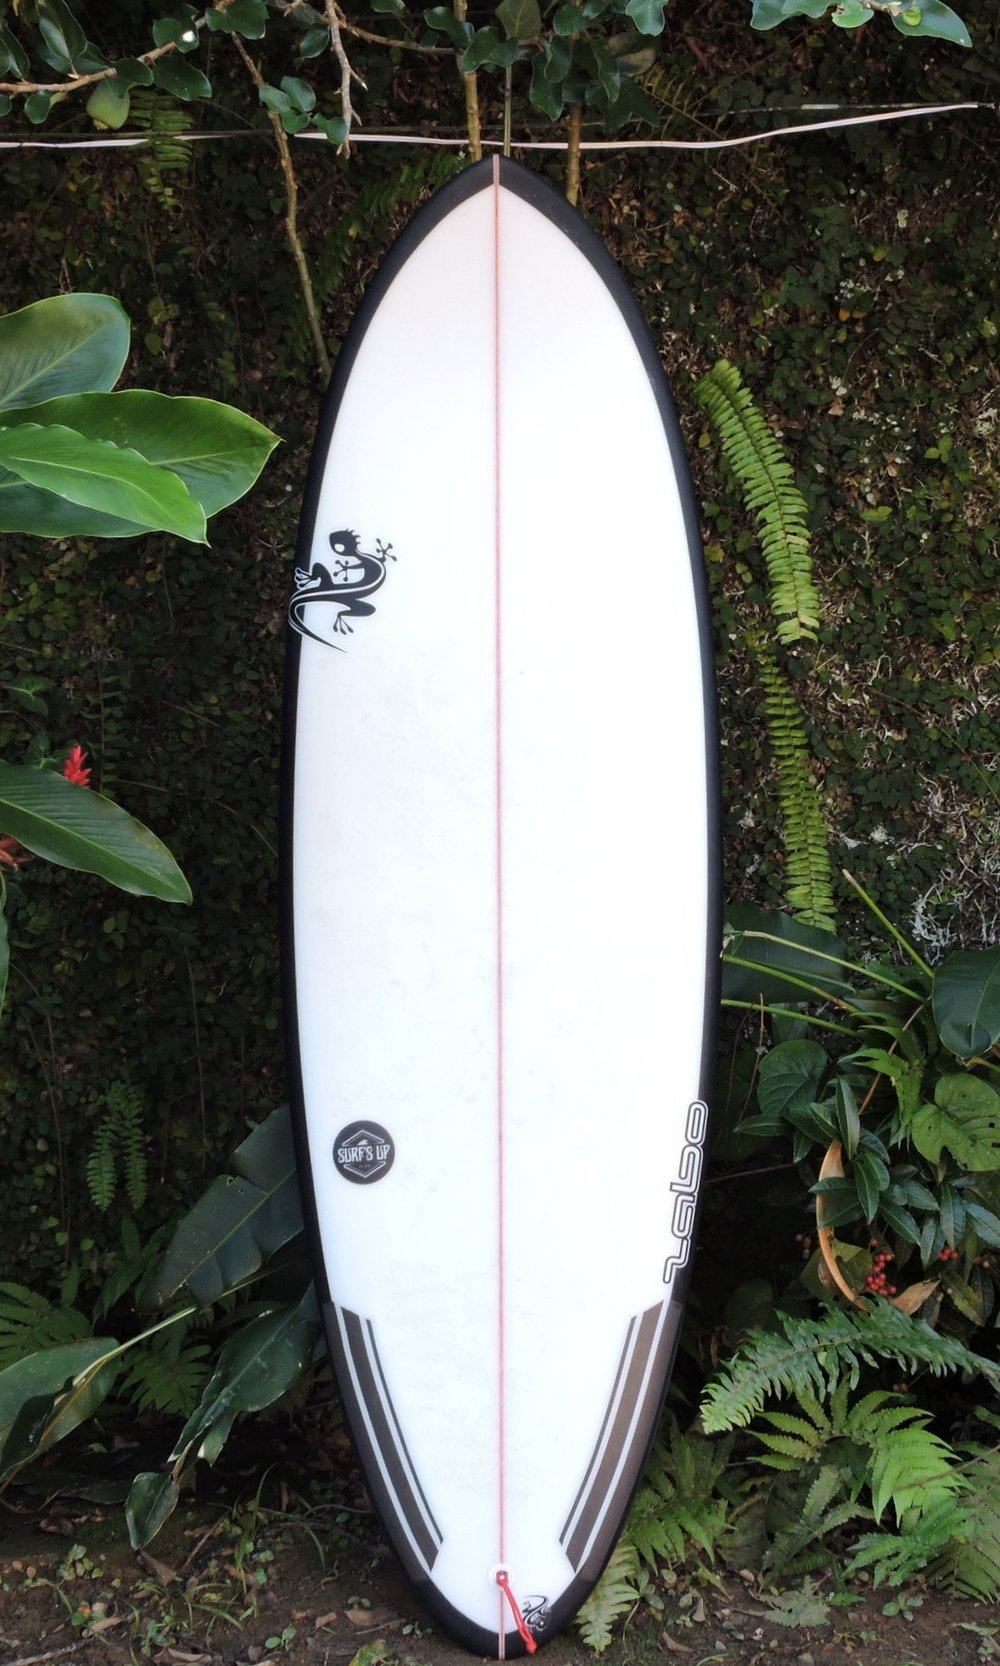 Total Flex - Zabo Surfboards5'5